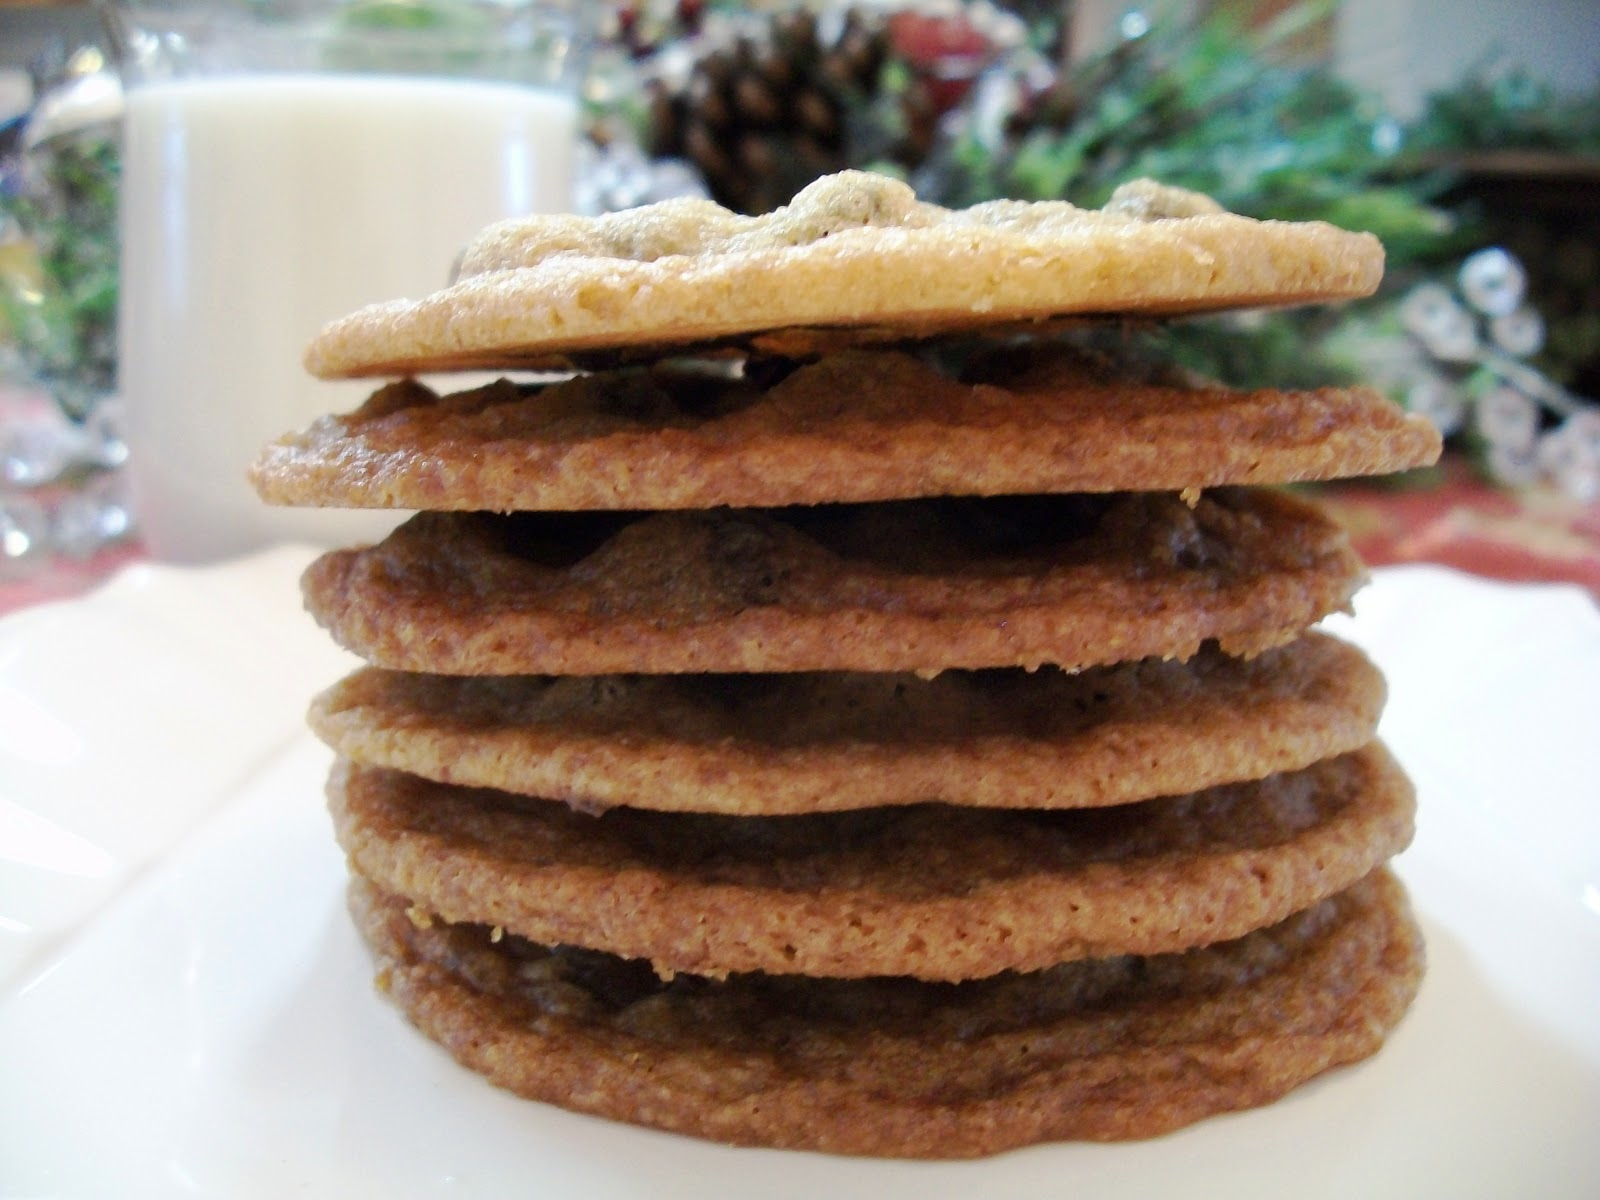 My Kind of Cooking: Tate's Famous Chocolate Chip Cookie Recipe